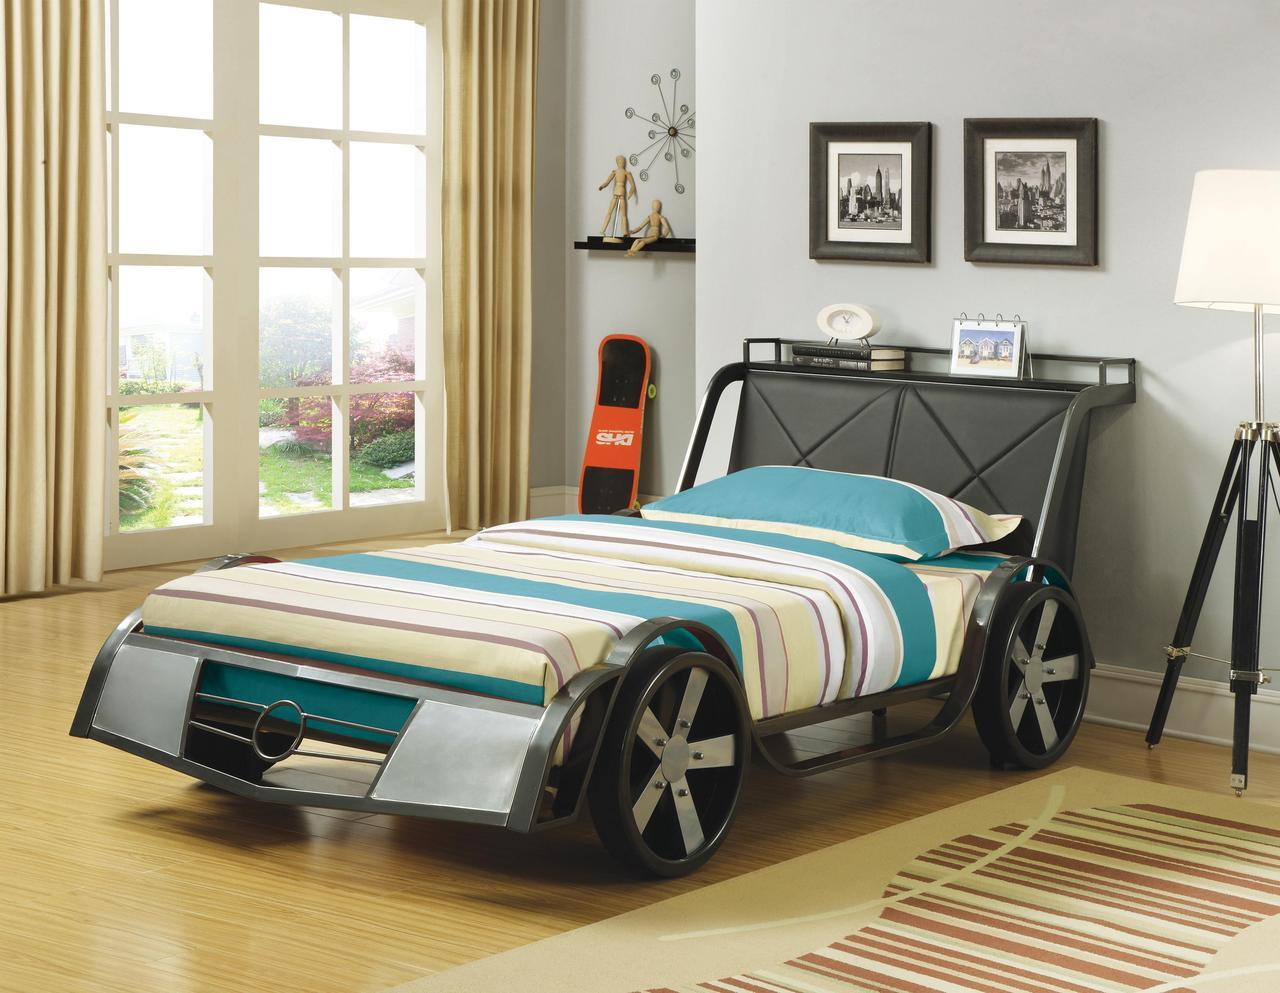 Metal Car Beds for Kids